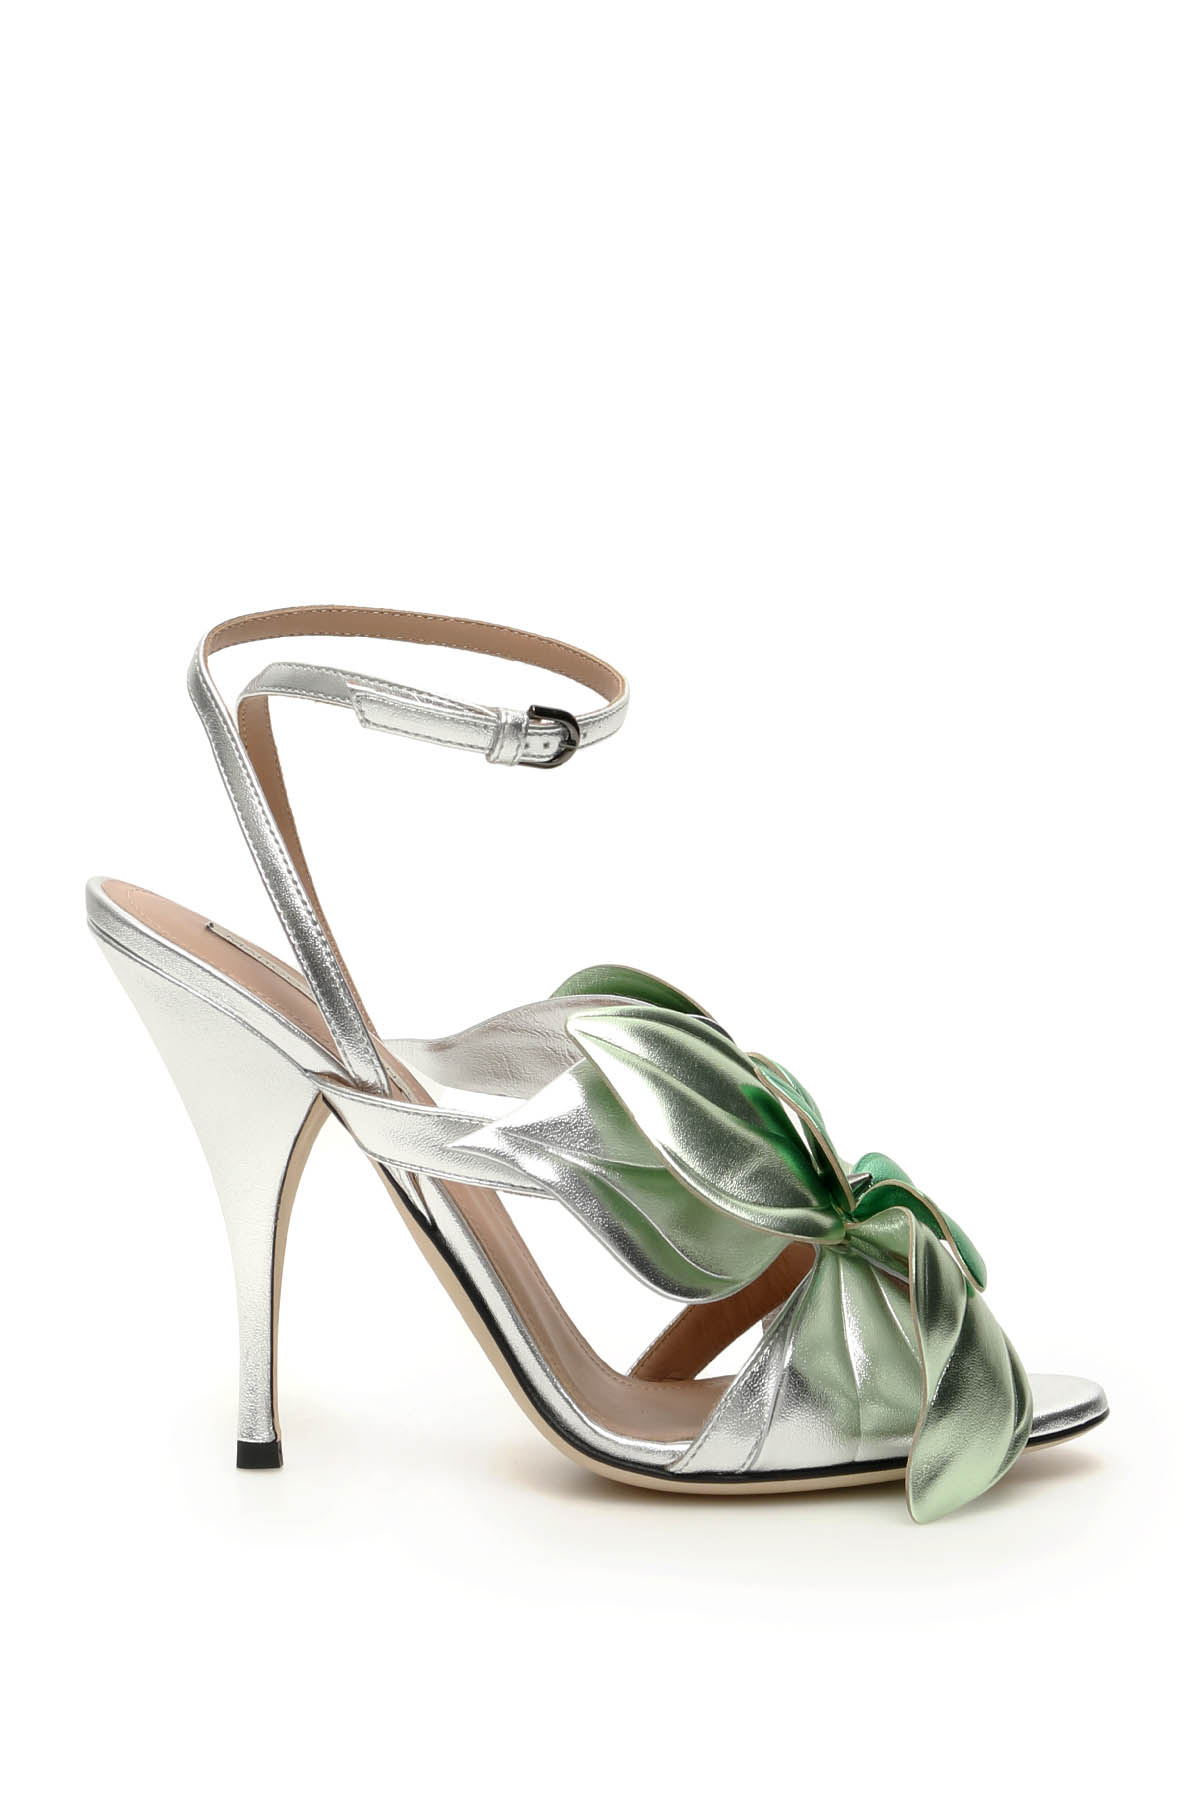 MARCO DE VINCENZO LAMINATED LEATHER SANDALS WITH FLOWER 37 Silver, Green Leather